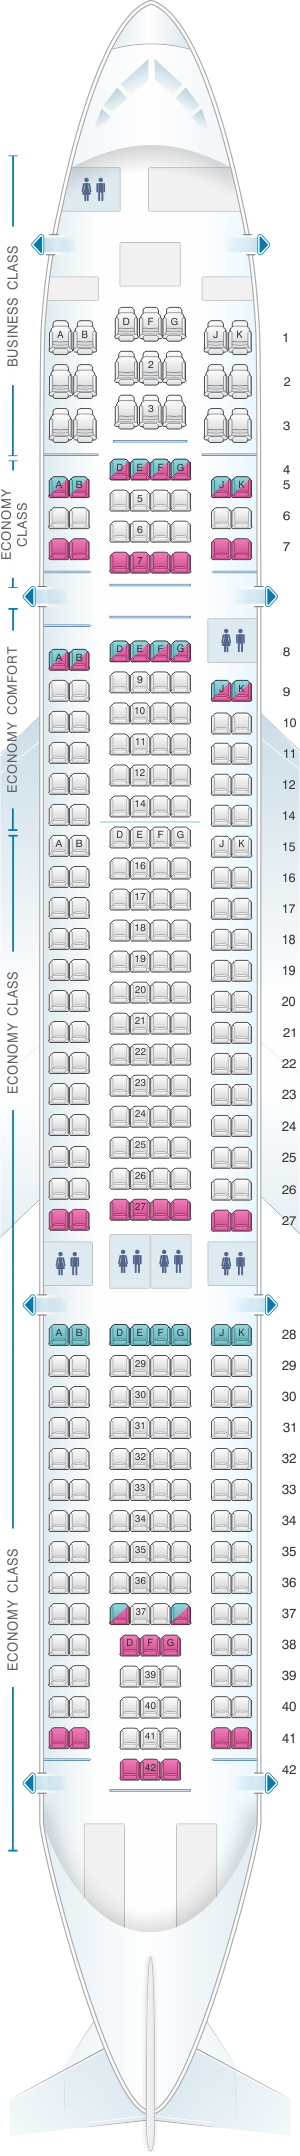 Seat map for Eurowings Airbus A330 200